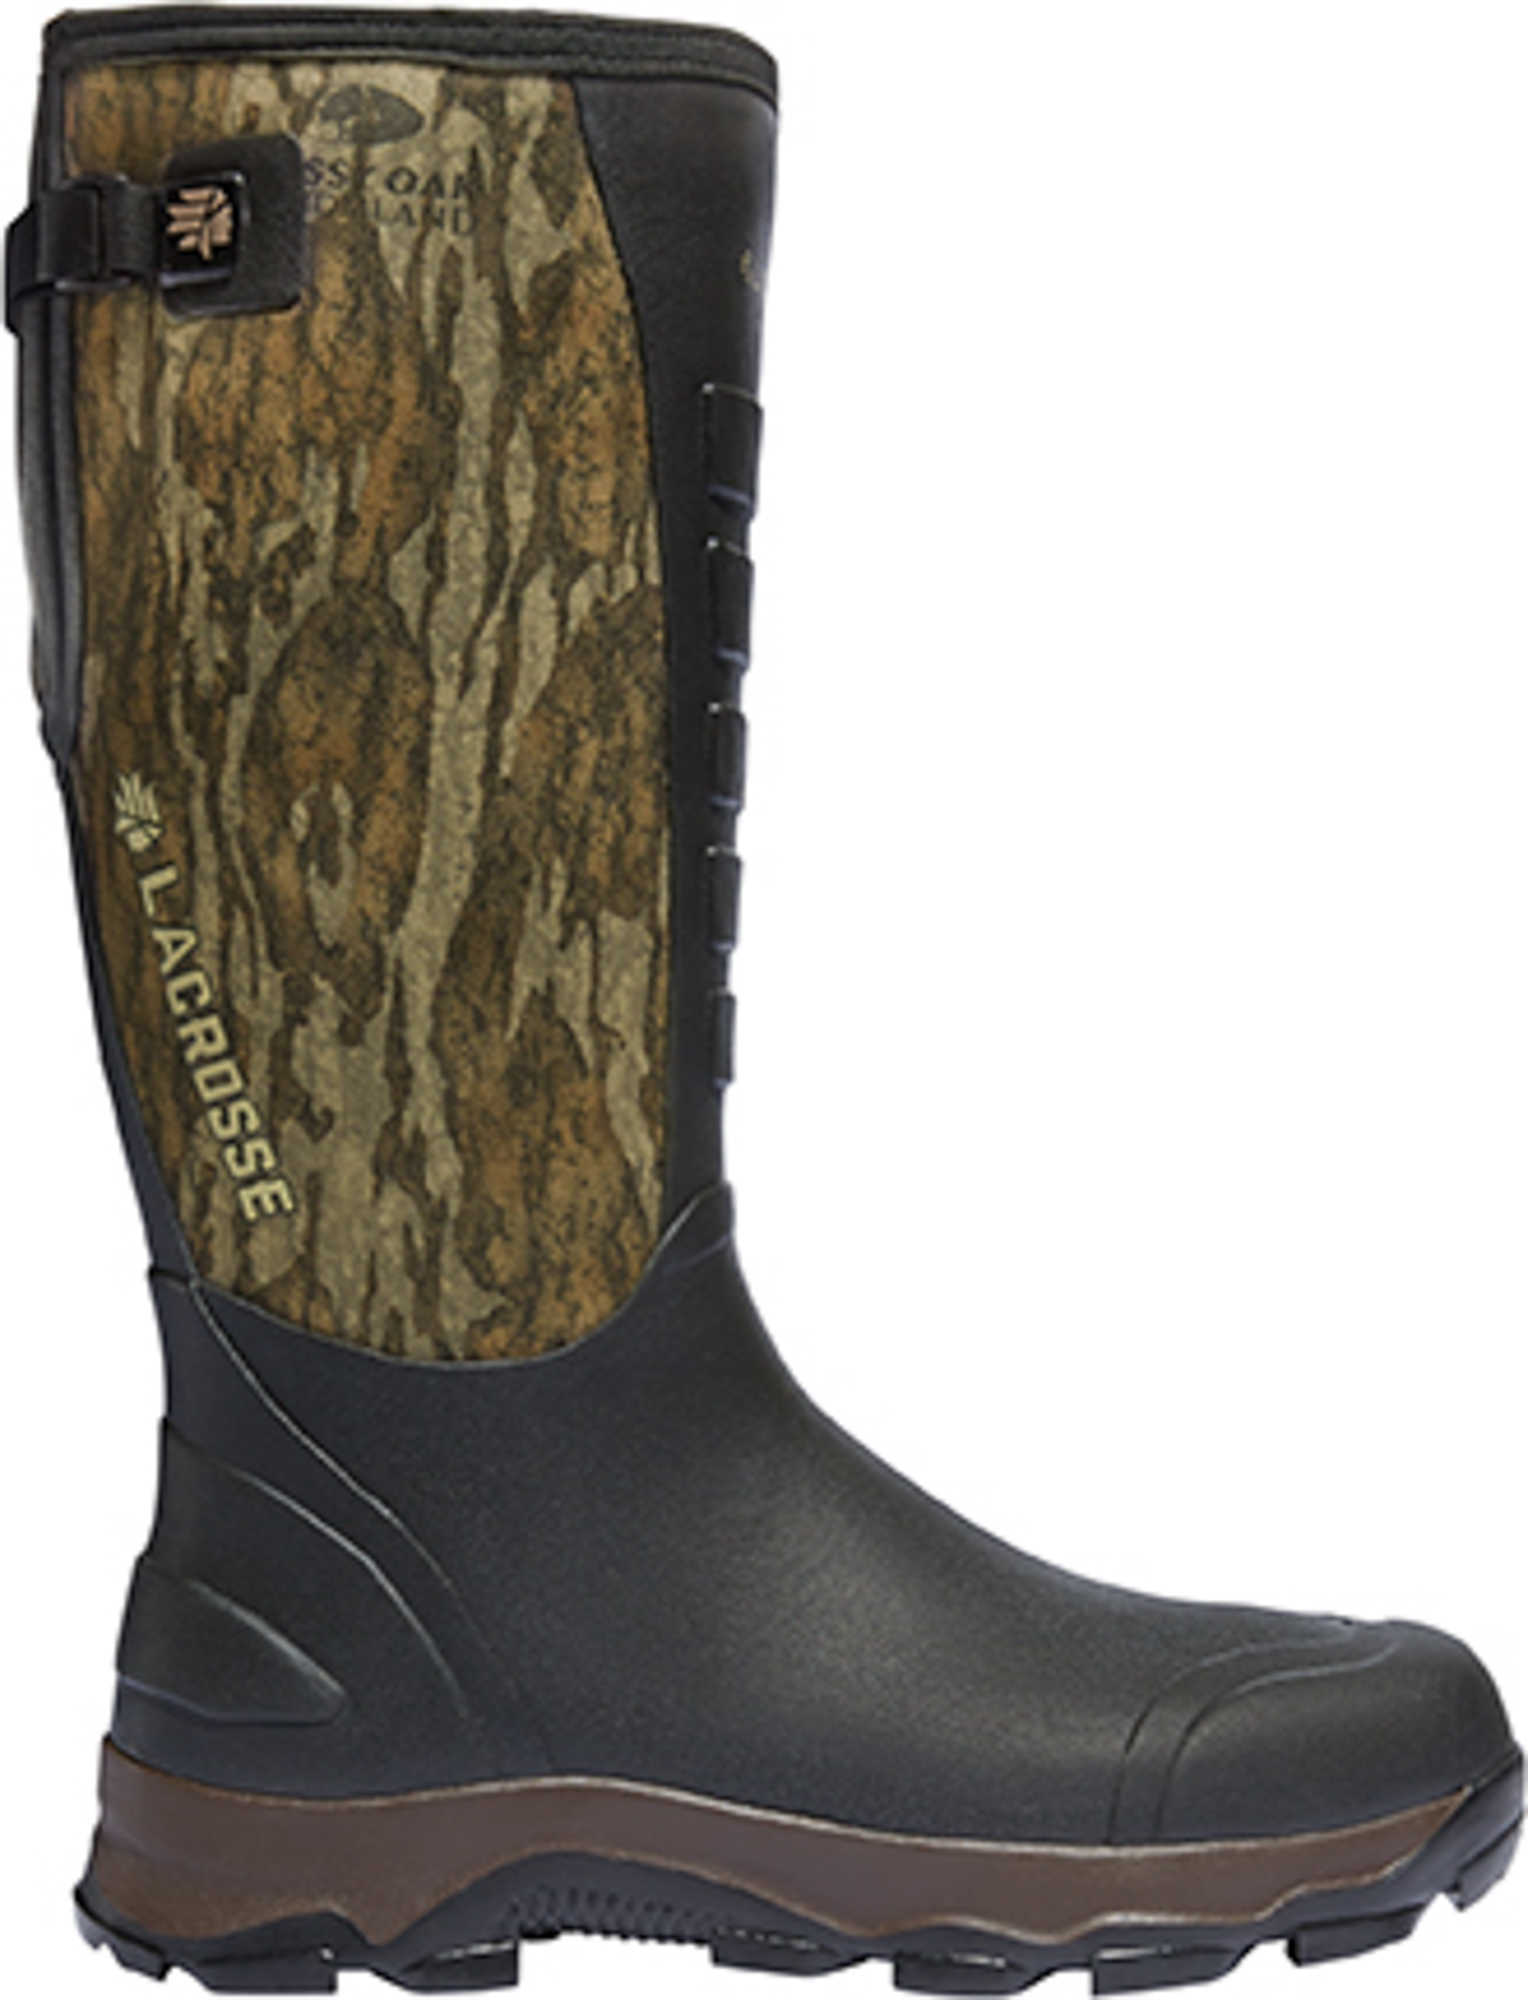 Lacrosse Western Rubber 4 Buckle over shoes